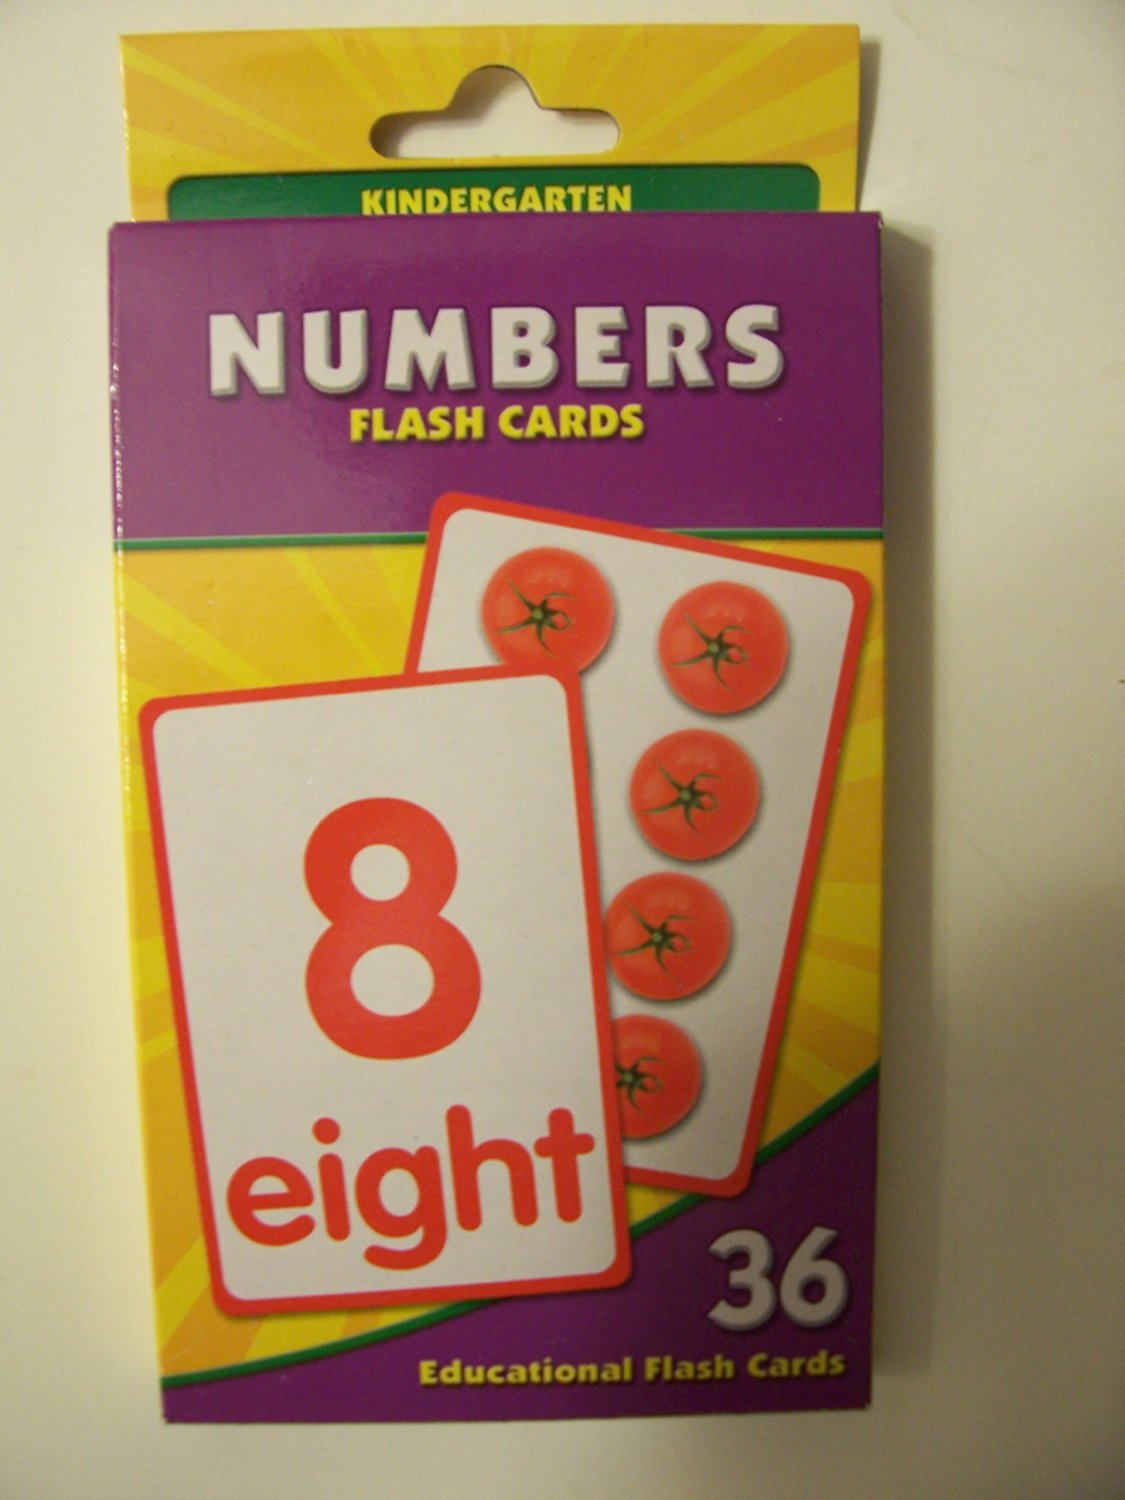 Educational Flash Cards ~ Numbers (36 Flash Cards; Kindergarten)